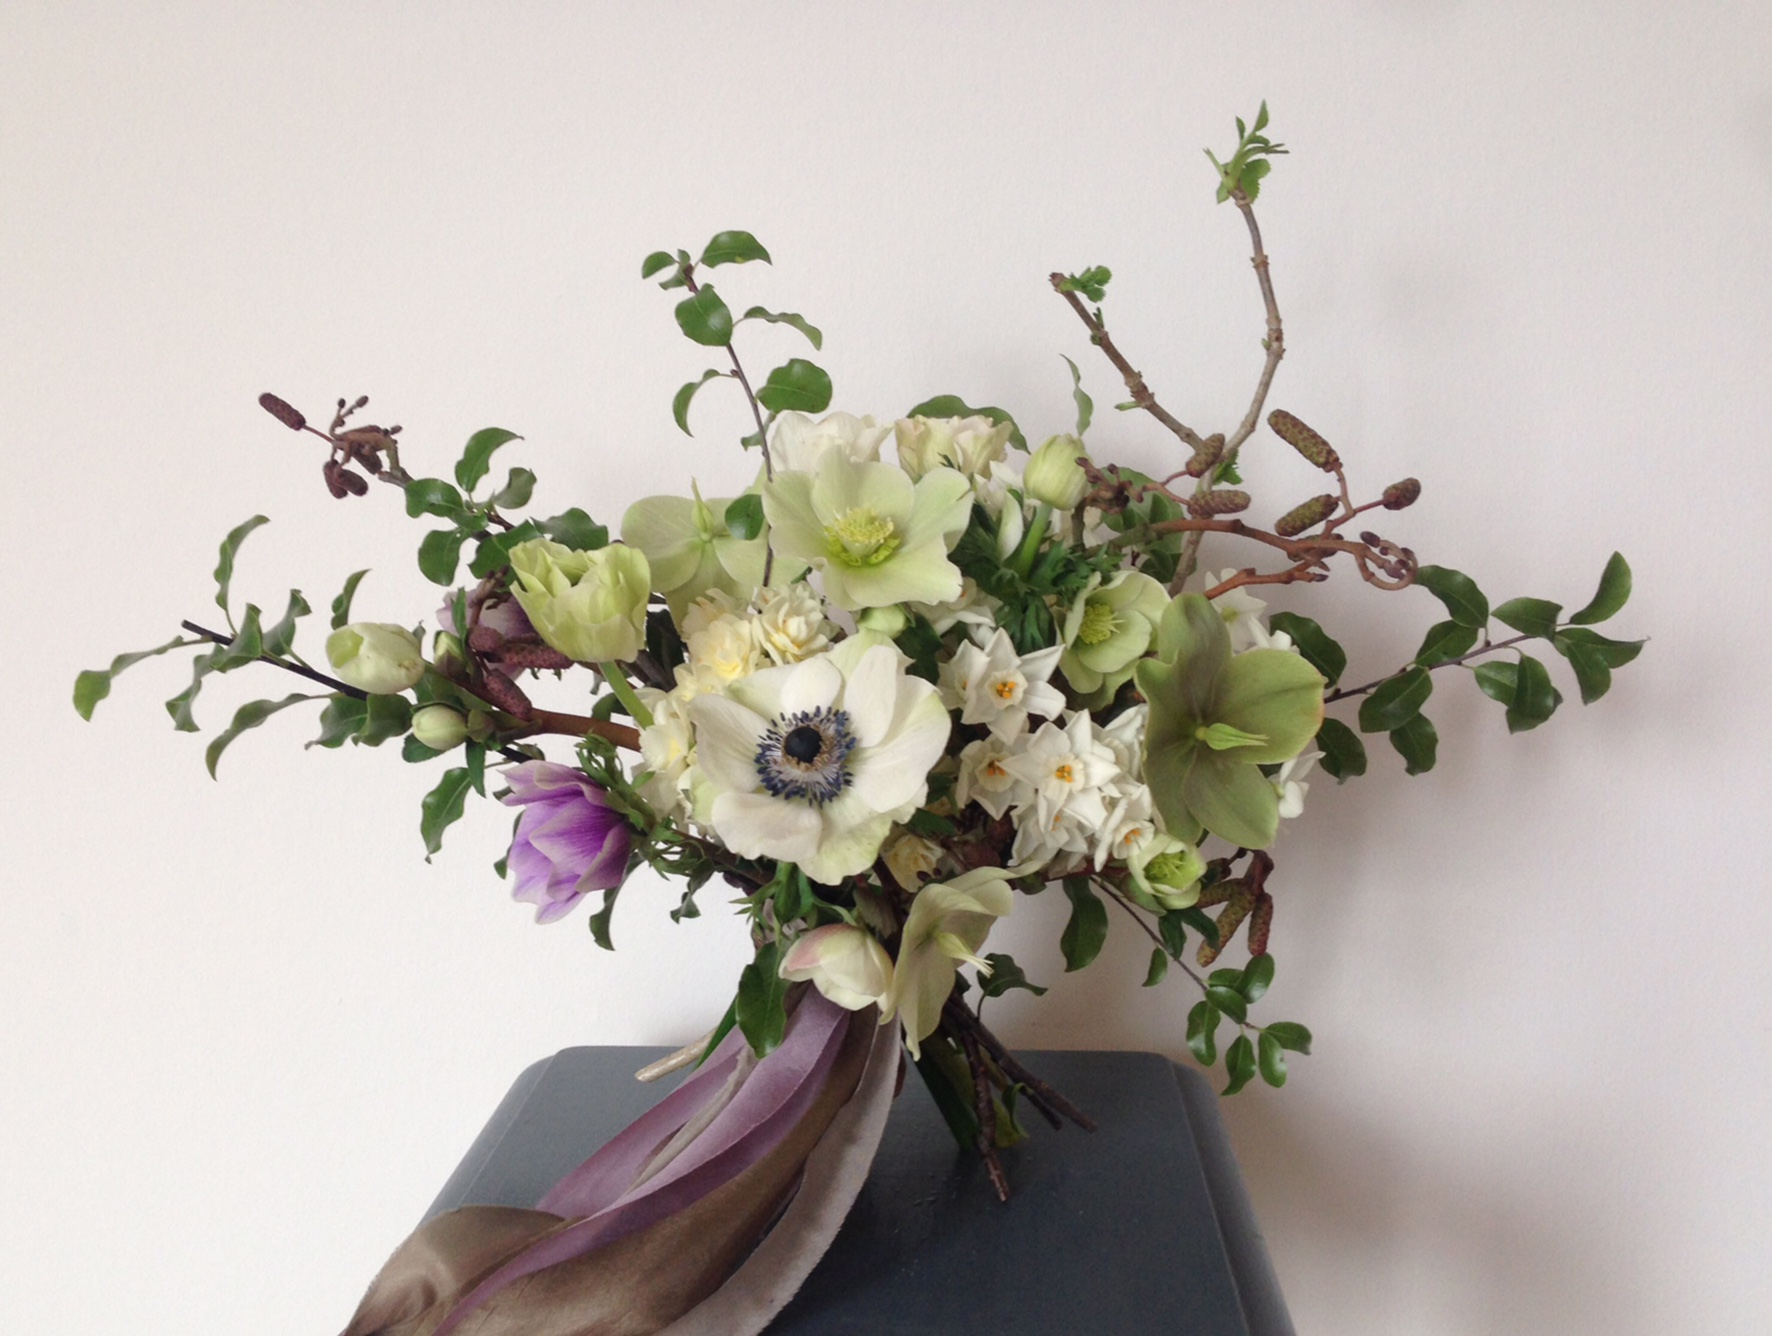 This British-grown bouquet includes anemone, hellebore, alder and paperwhite narcissi